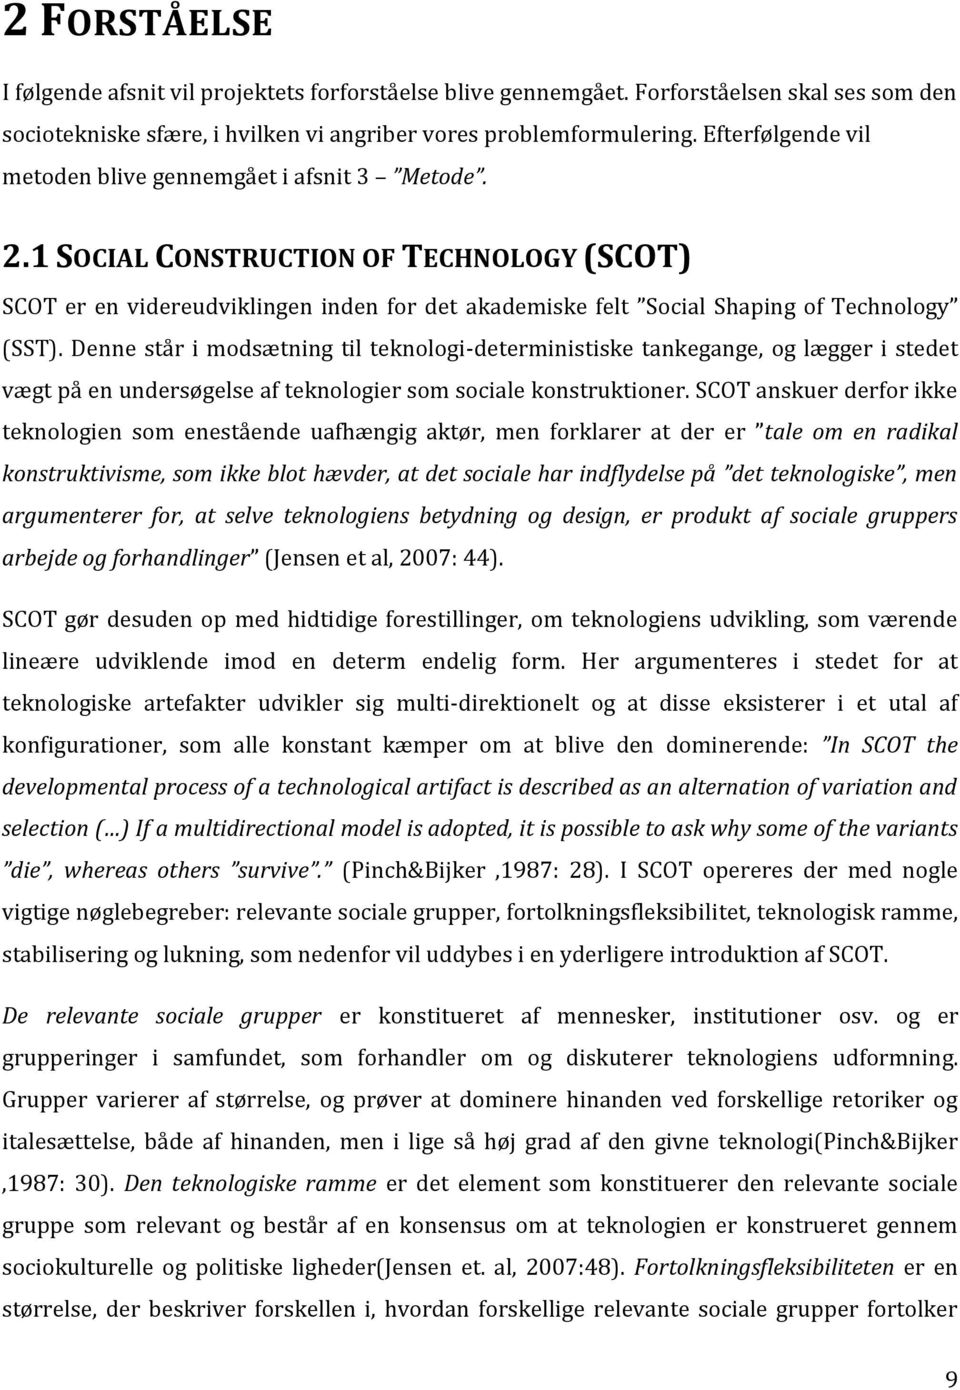 1 SOCIAL CONSTRUCTION OF TECHNOLOGY (SCOT) SCOT er en videreudviklingen inden for det akademiske felt Social Shaping of Technology (SST).